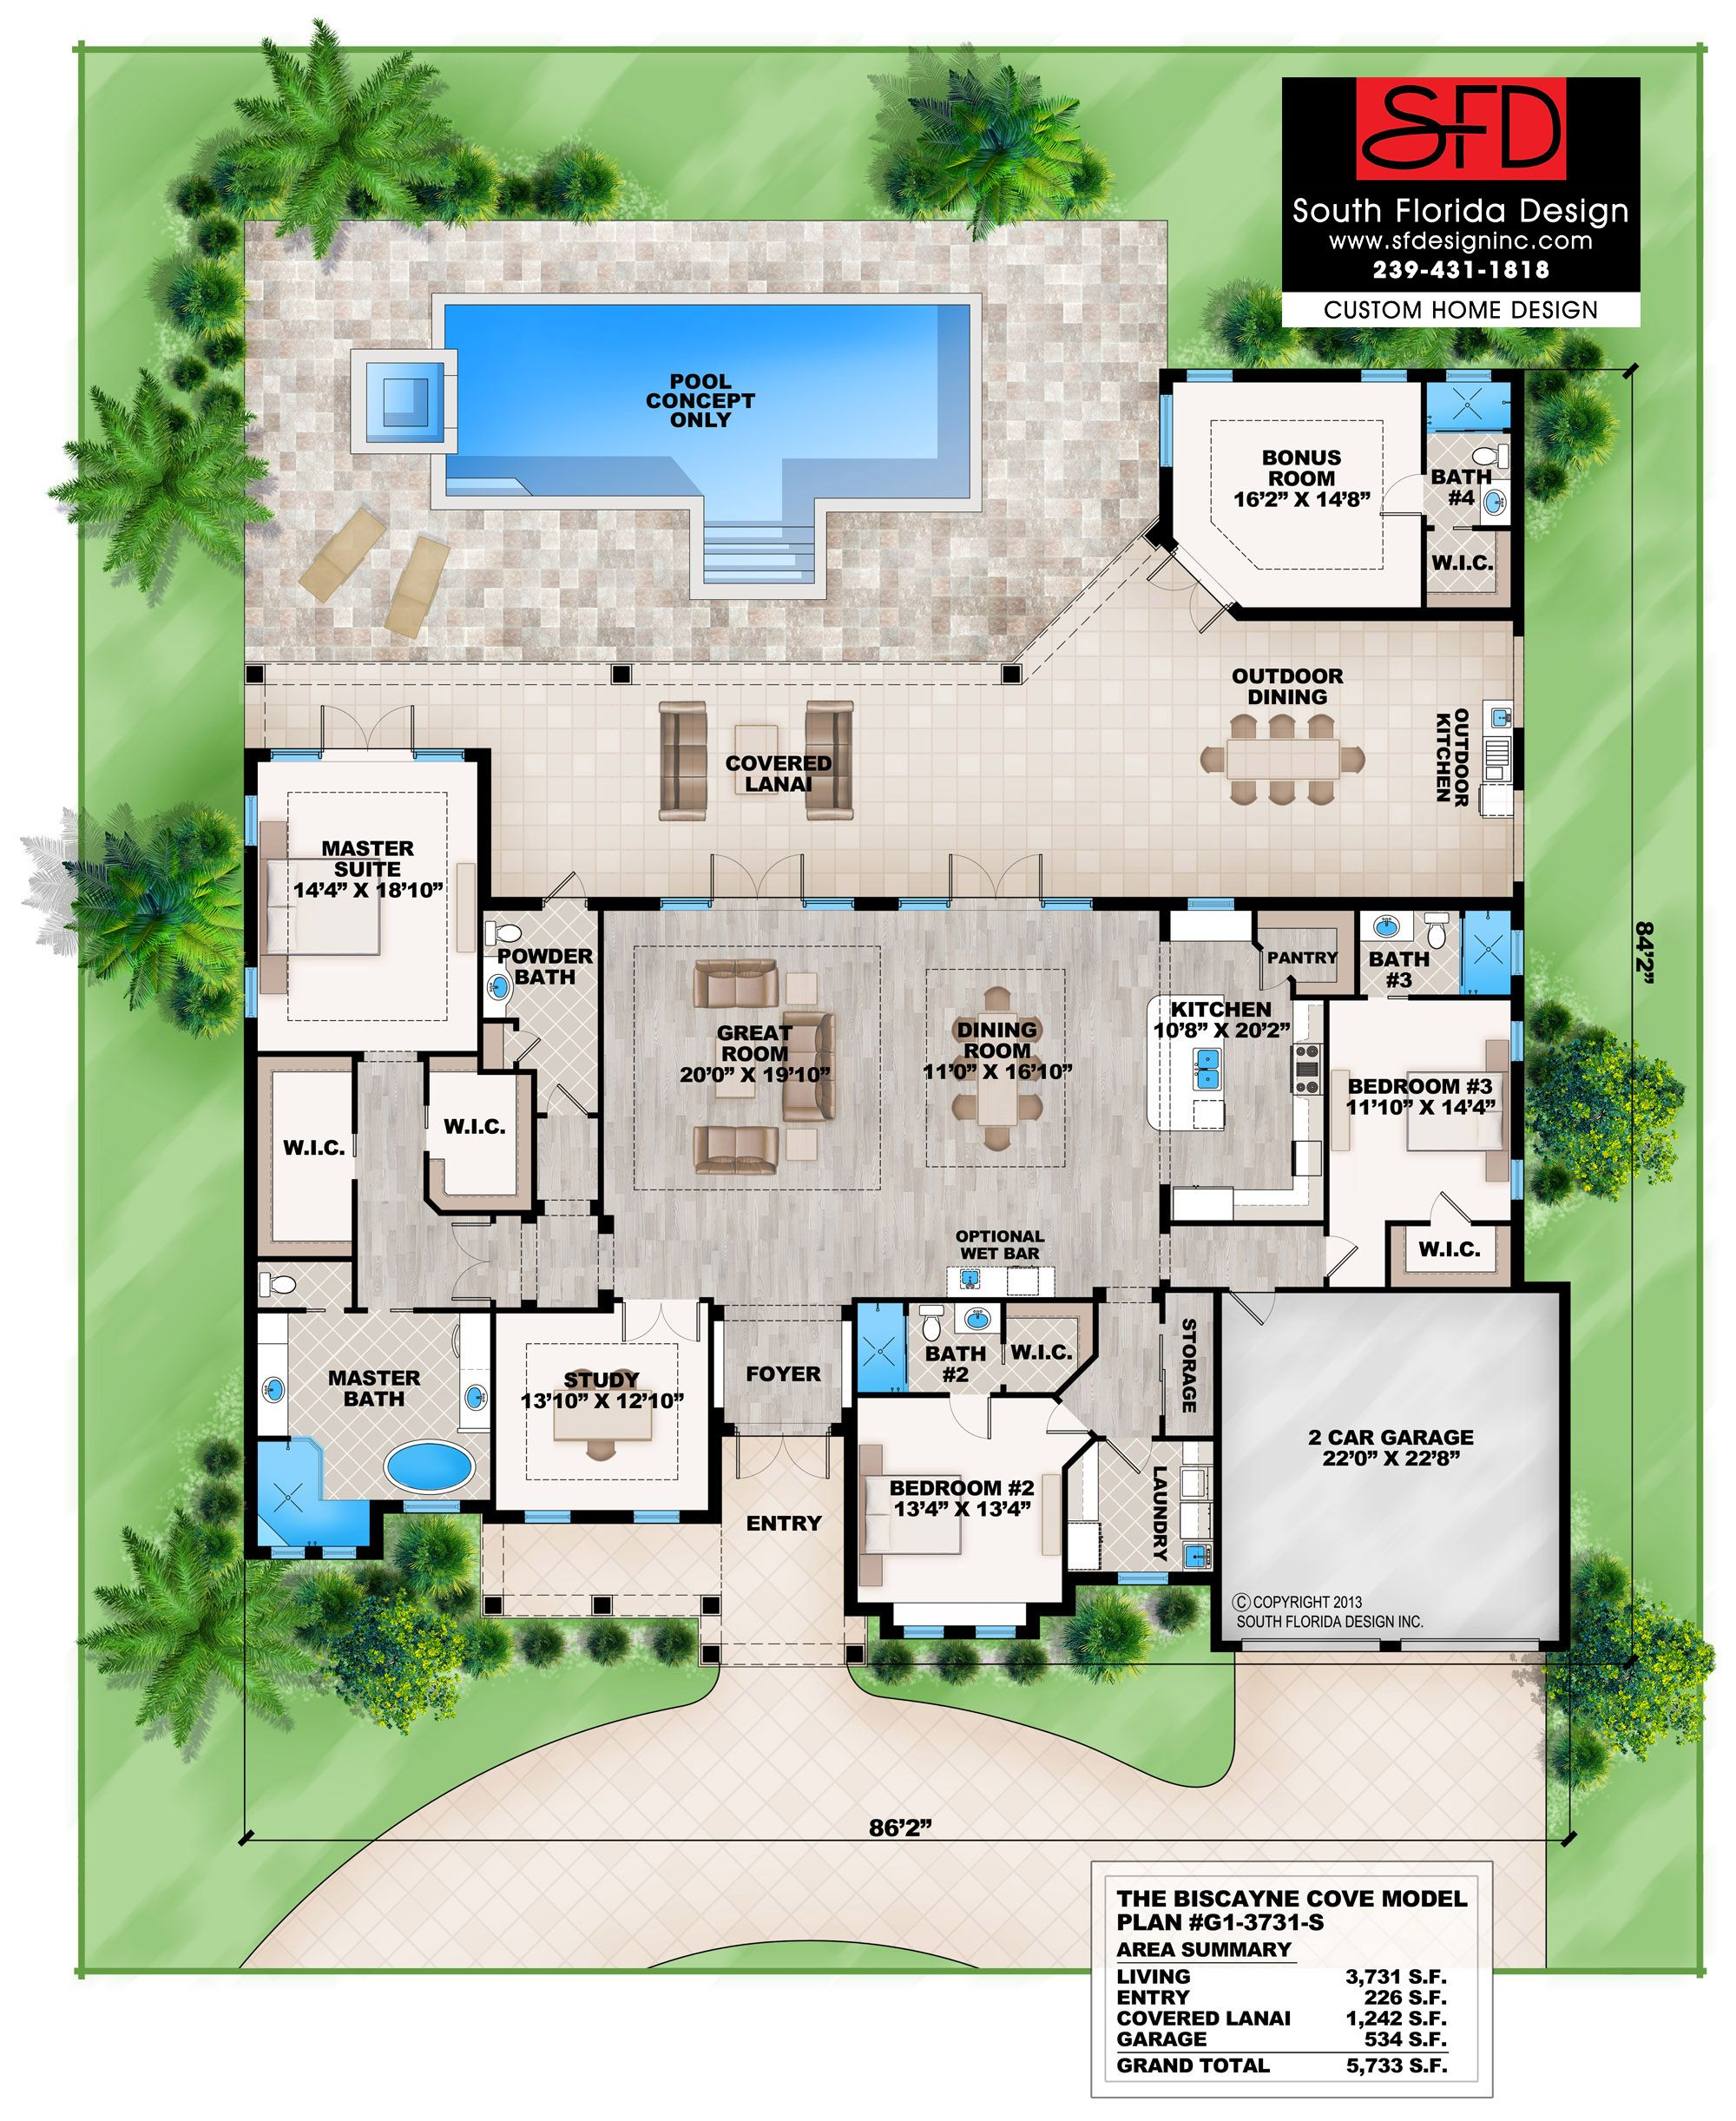 Biscayne Cove-This contemporary beach style house plan ... on florida house plans with pool, narrow lot house plans with pool, italian house plans with pool, ranch house plans with pool, beach house plans with pool,